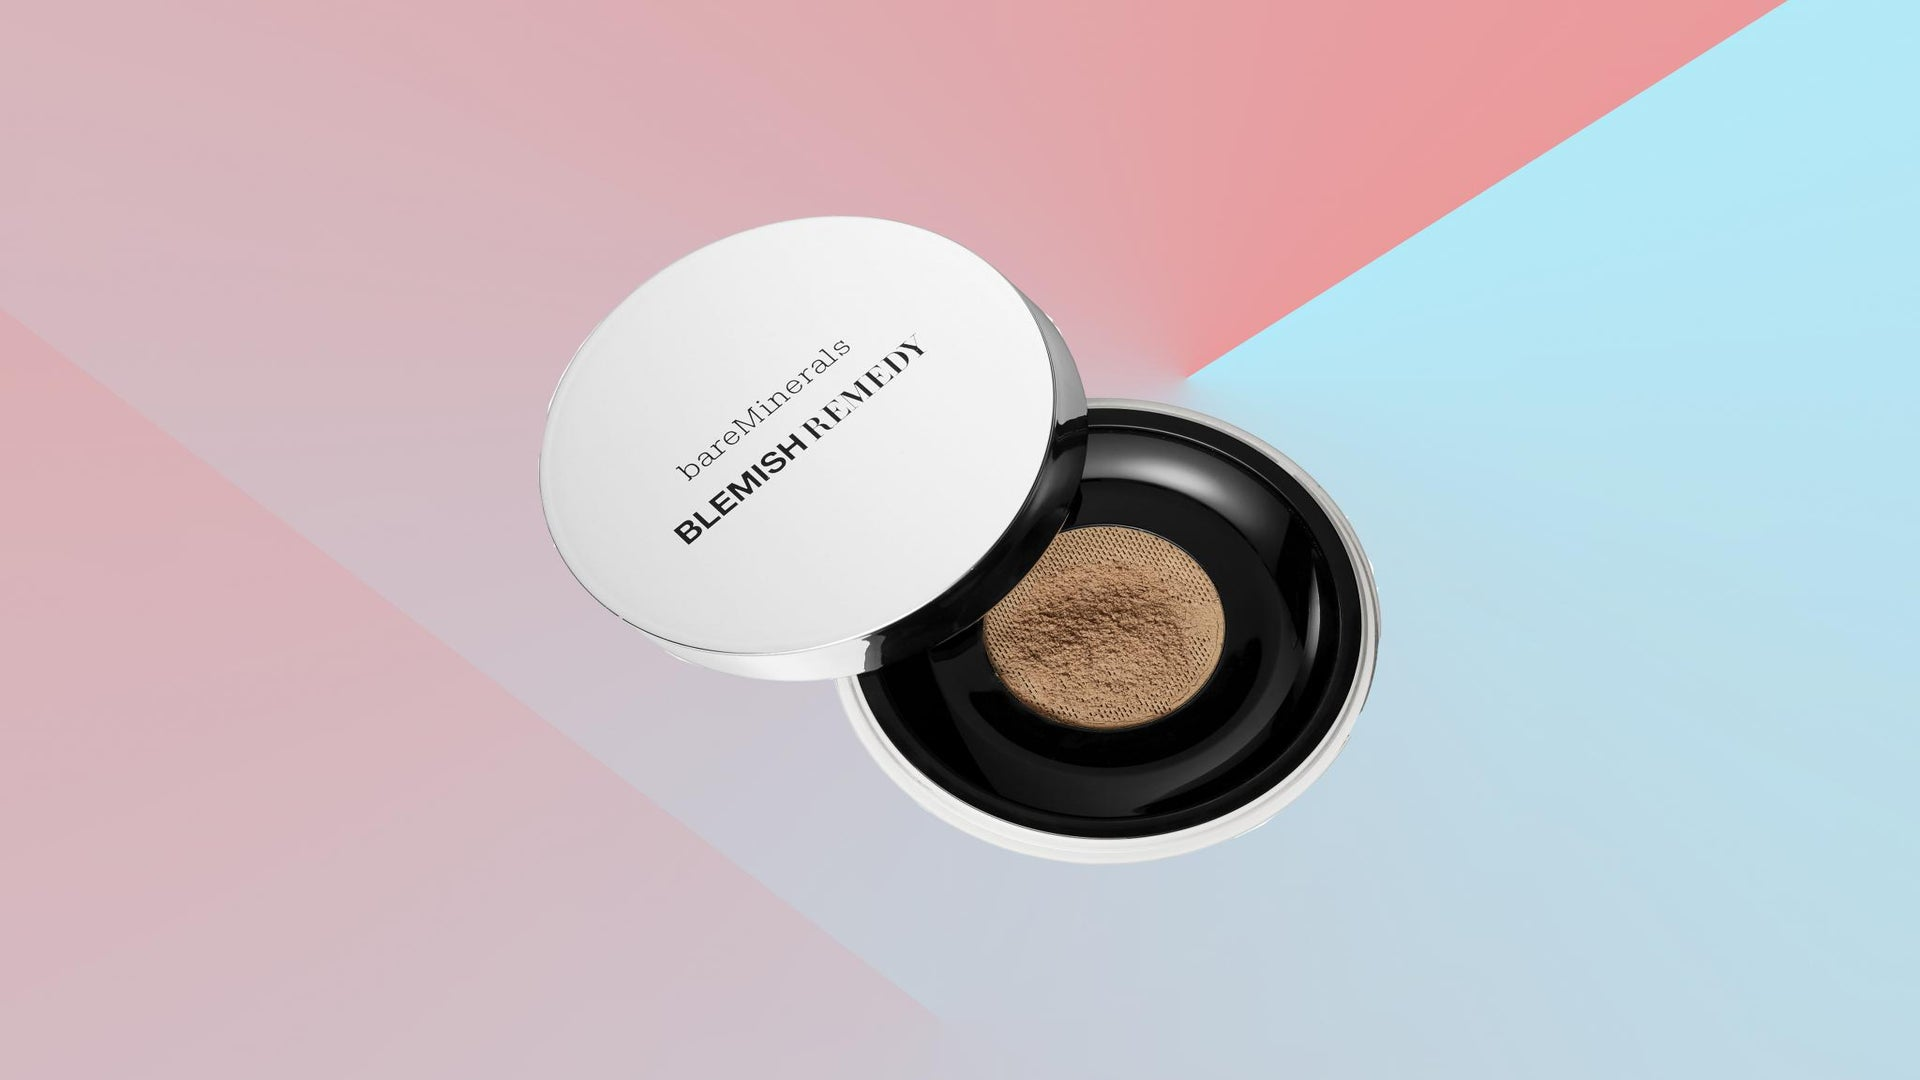 Bareminerals New Foundation Also Clears Up Acne